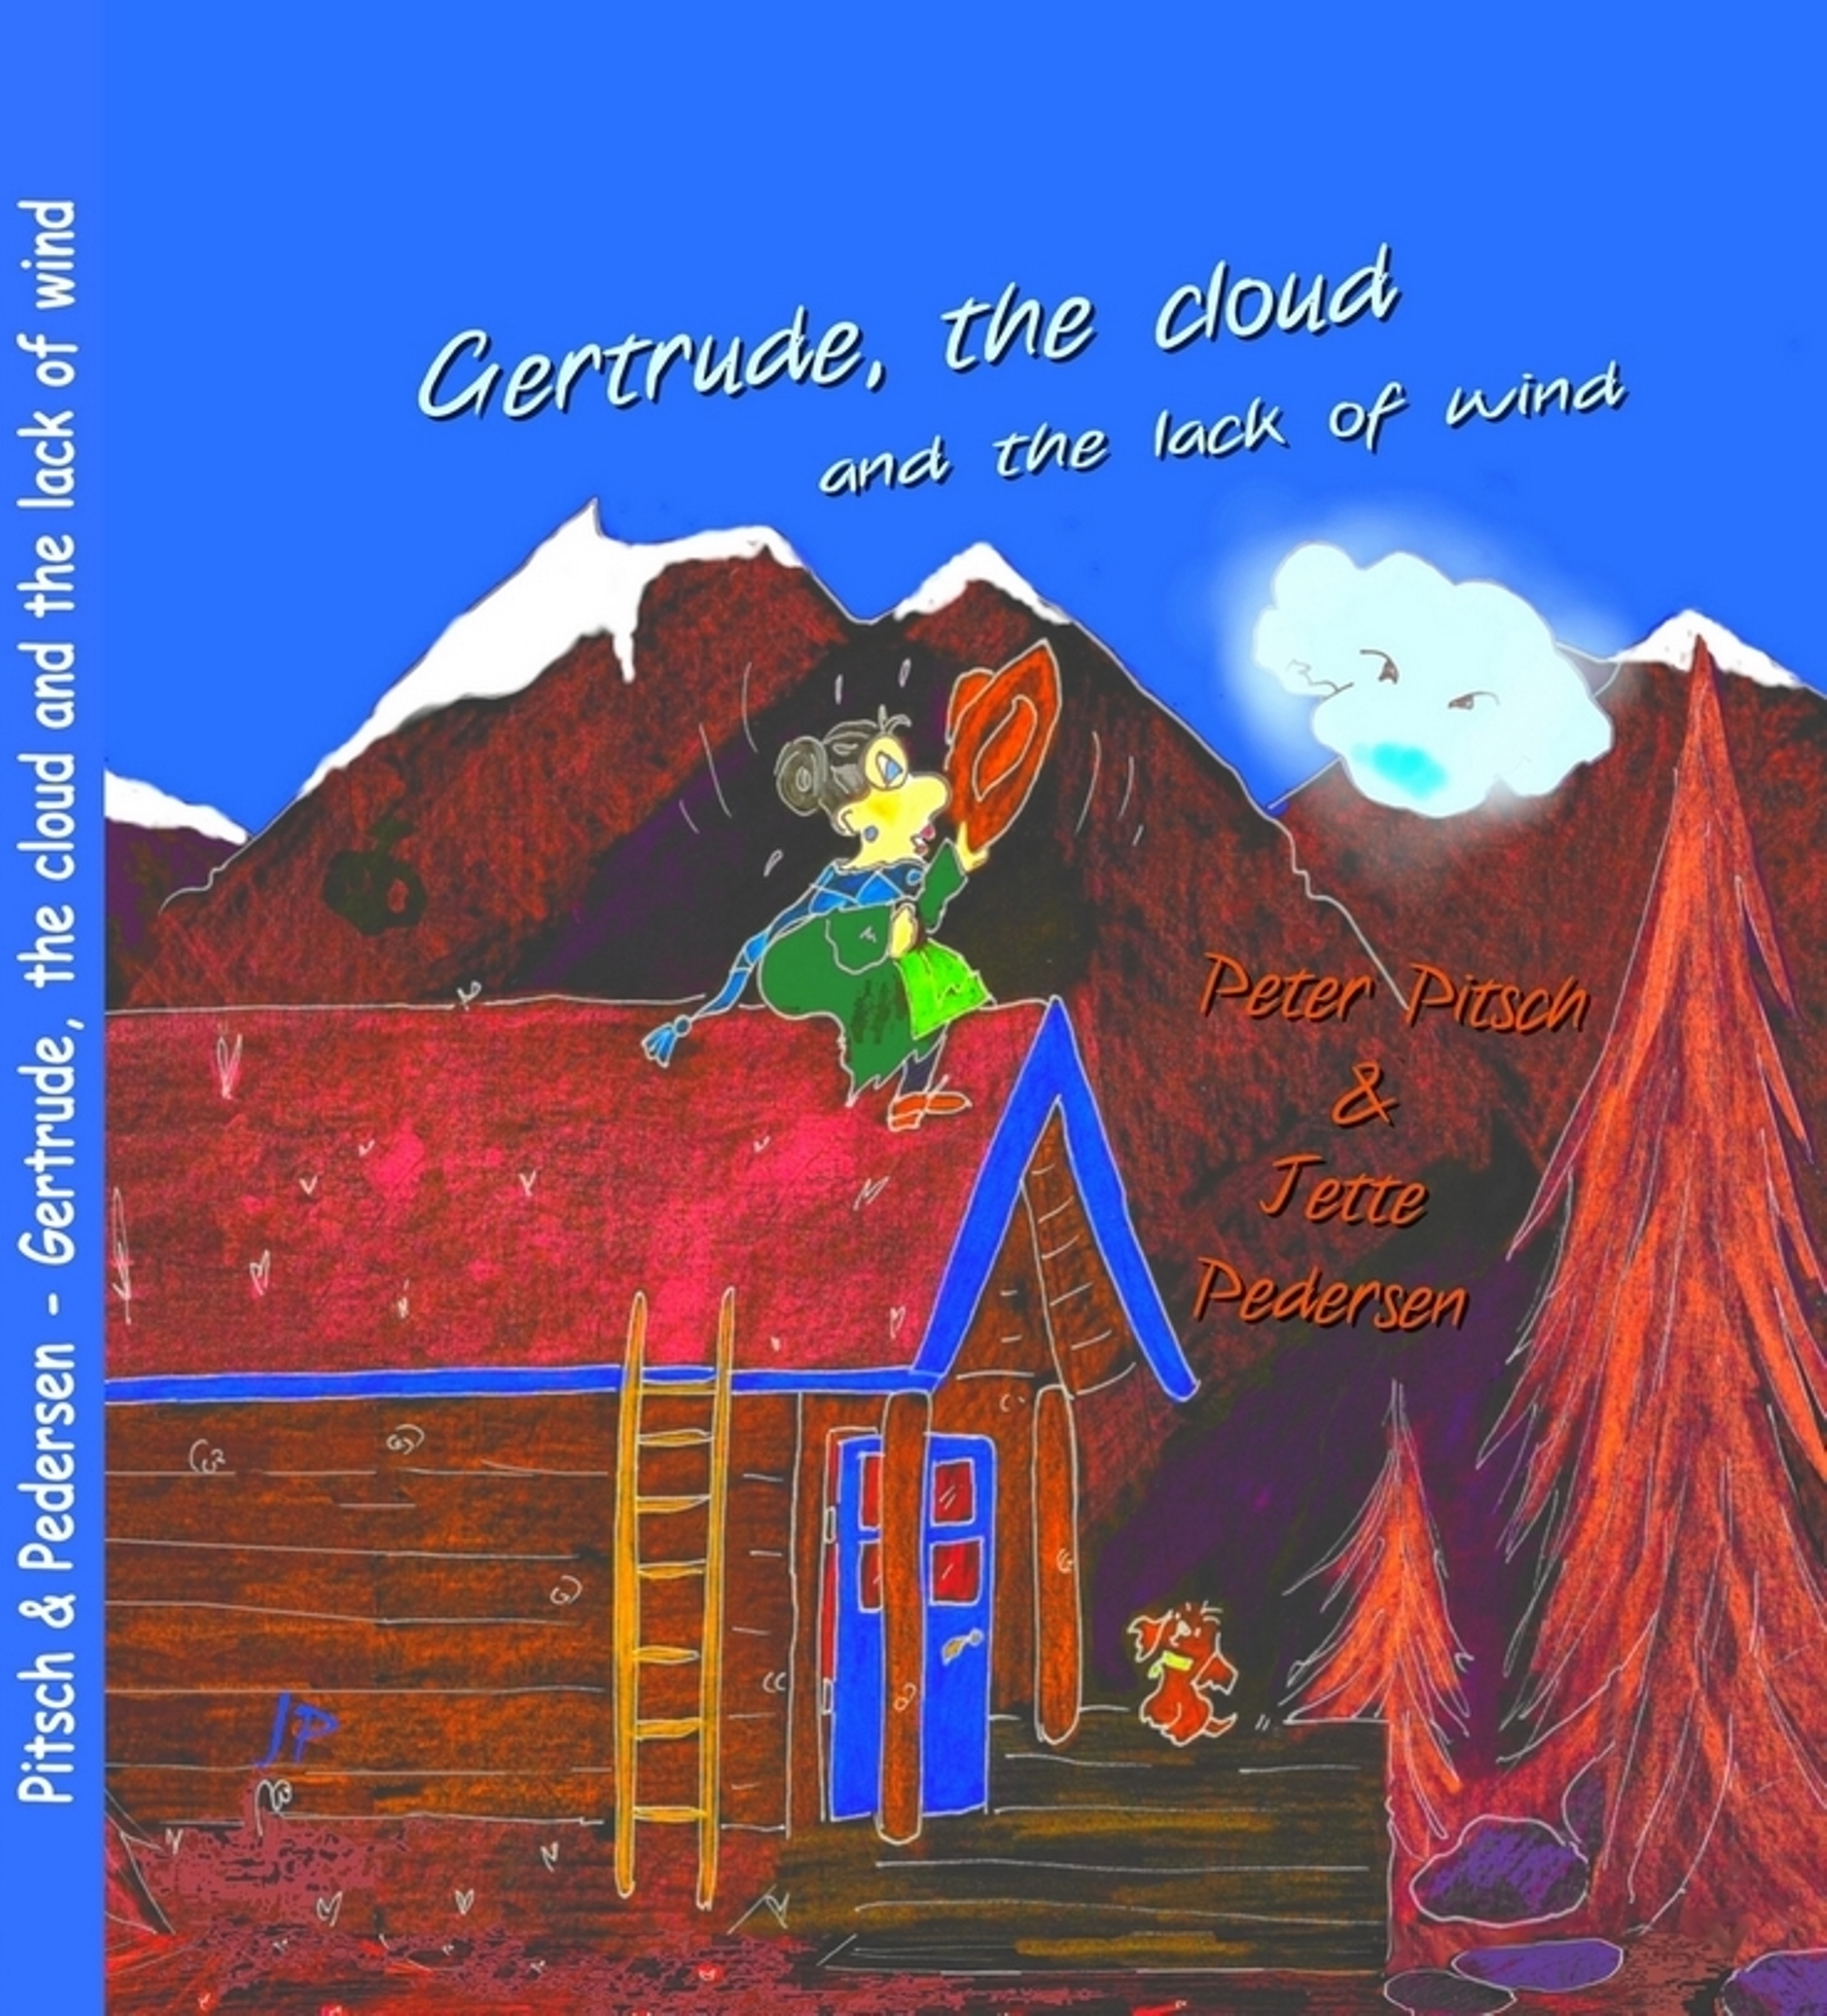 Gertrude, the cloud and the lack of wind